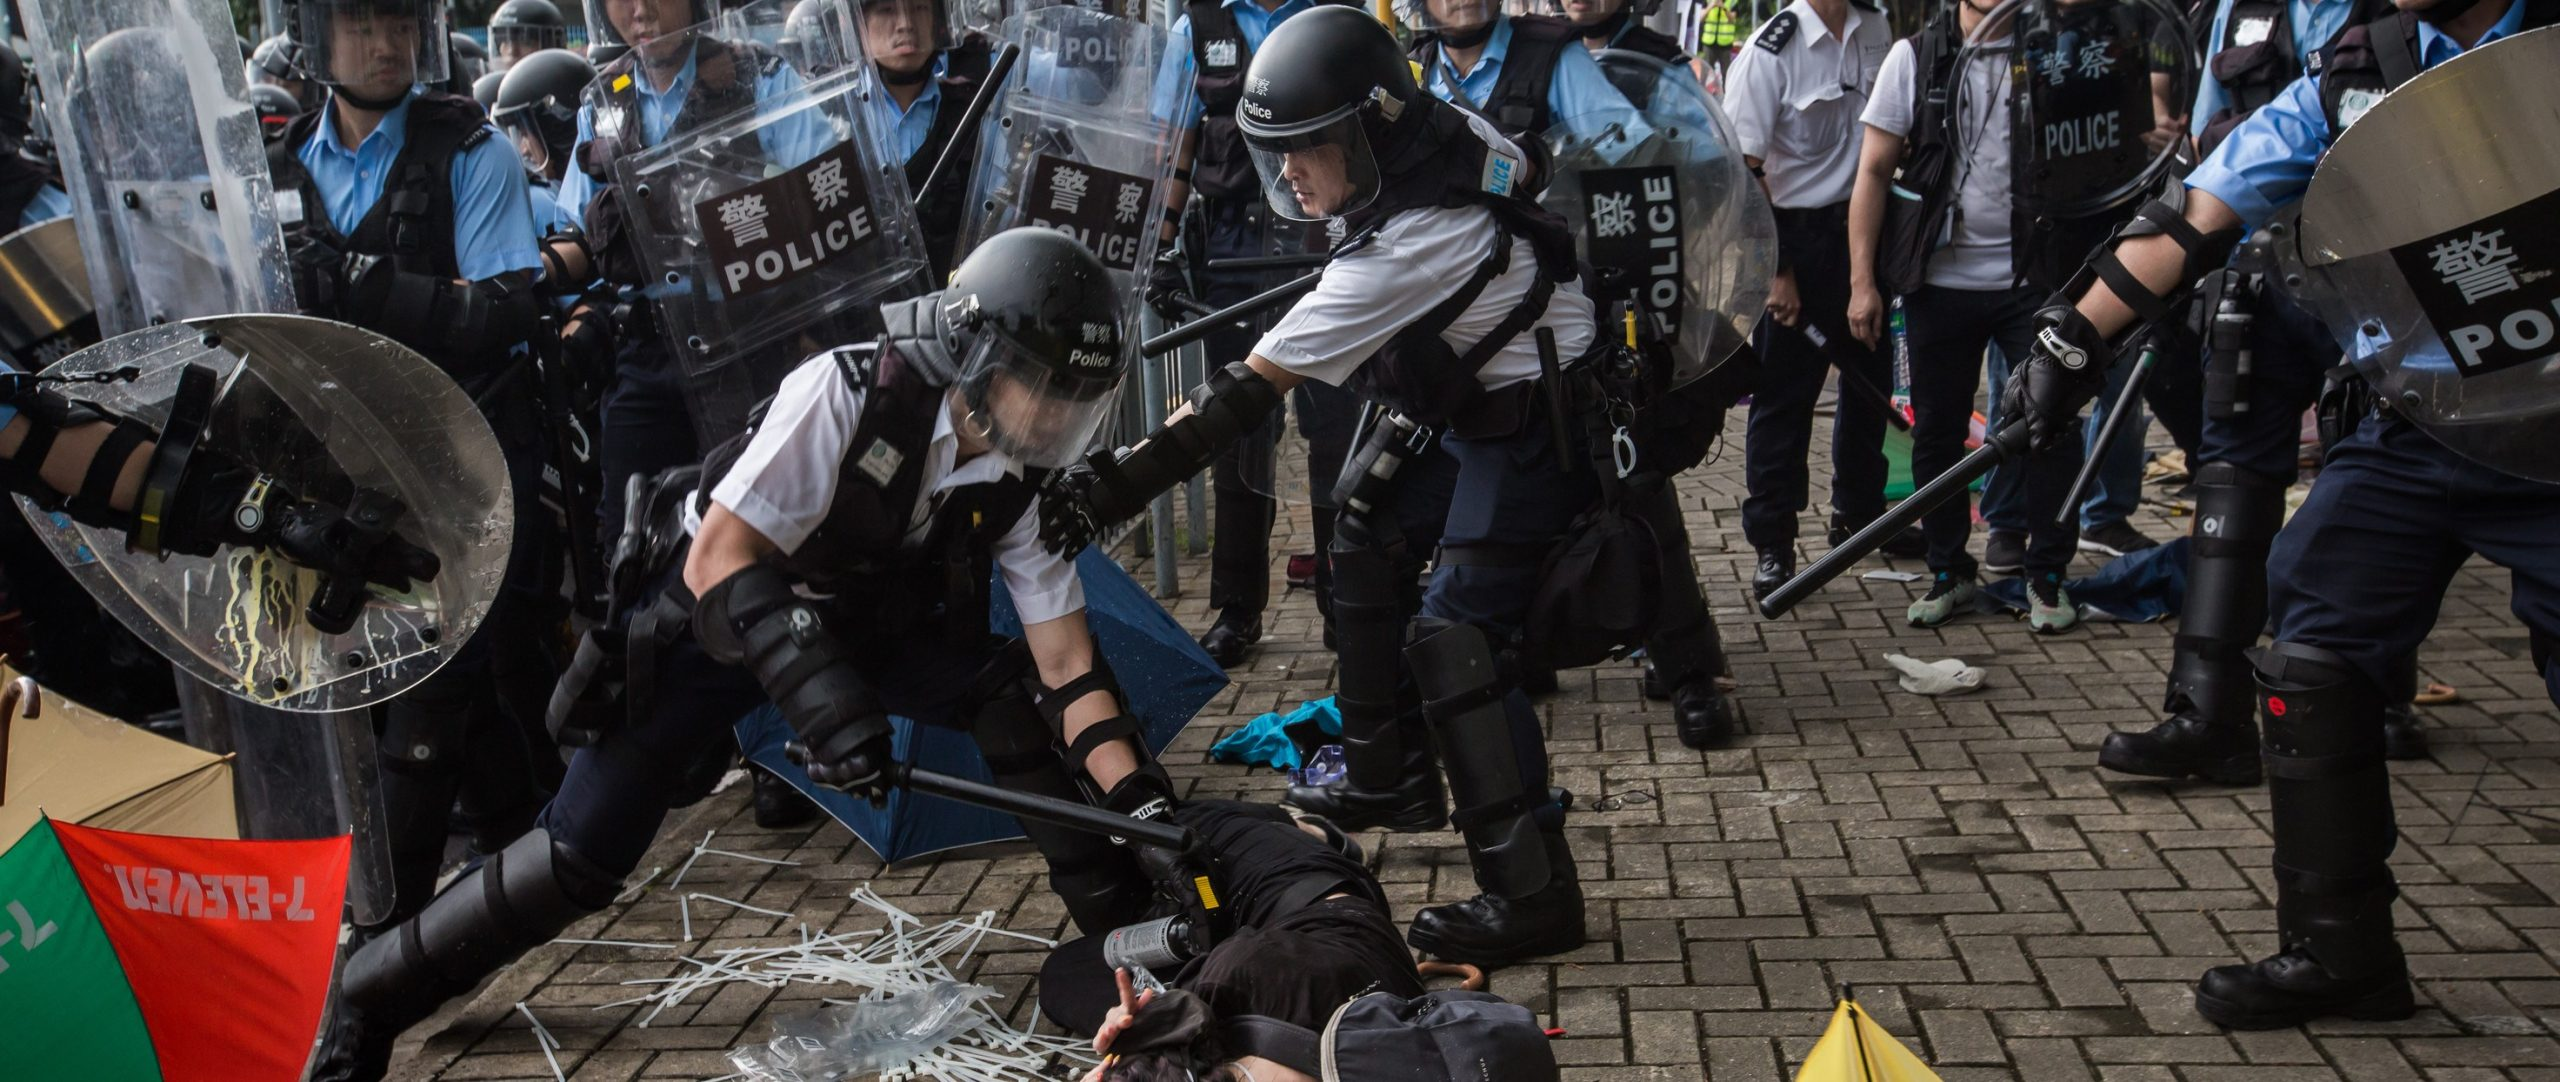 How to investigate the police: Lessons for Hong Kong from around the world